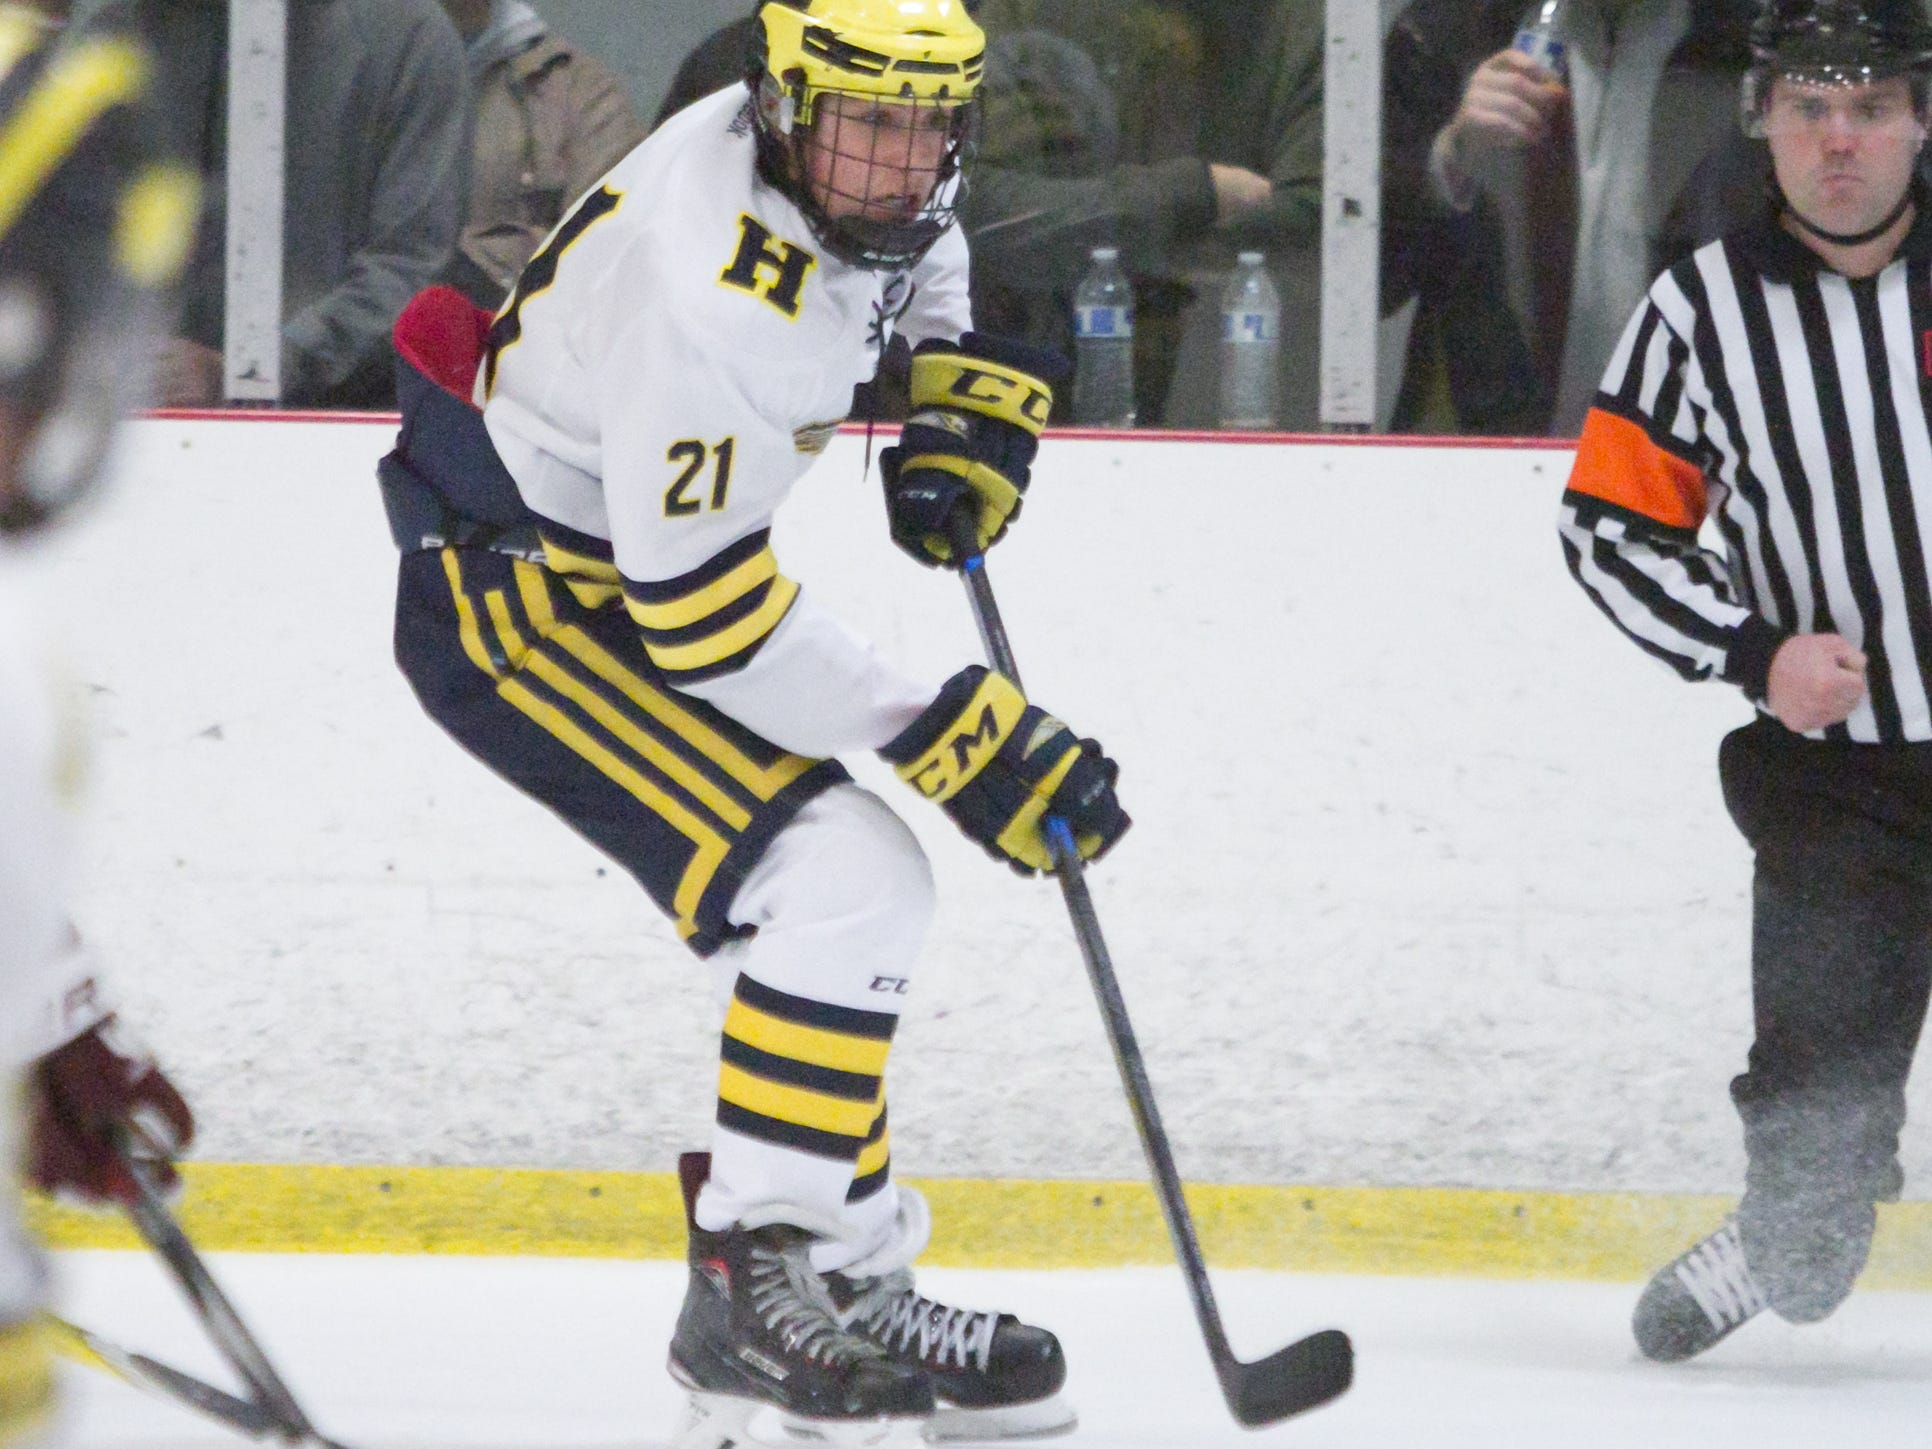 Hartland's Trent Krause handles the puck in a 2-1 victory over Detroit U of D Jesuit on Friday, Jan. 11, 2019 at Hartland Sports Center.